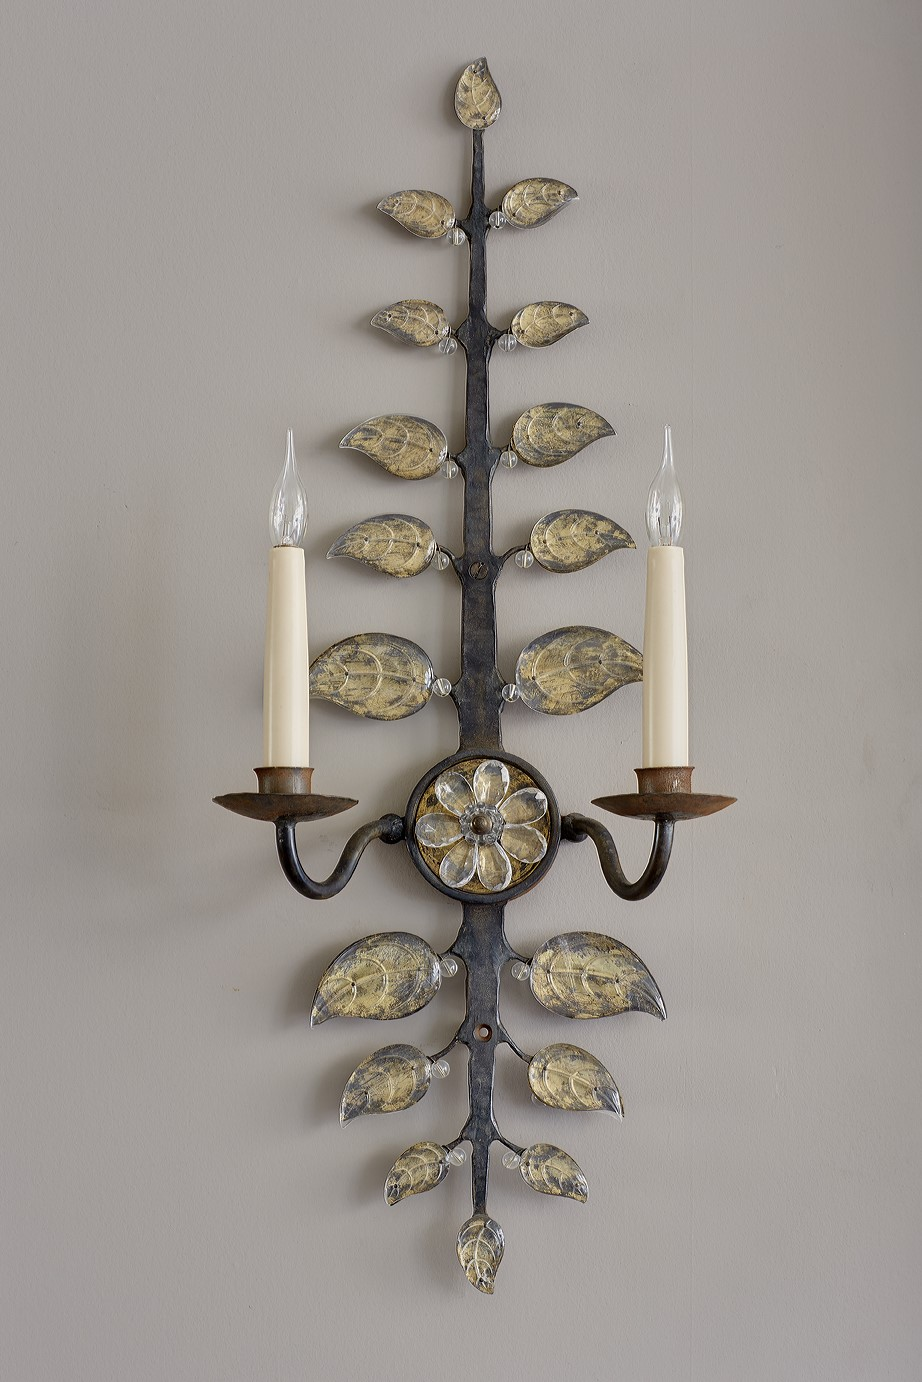 Wall applique with clear glass leaves.